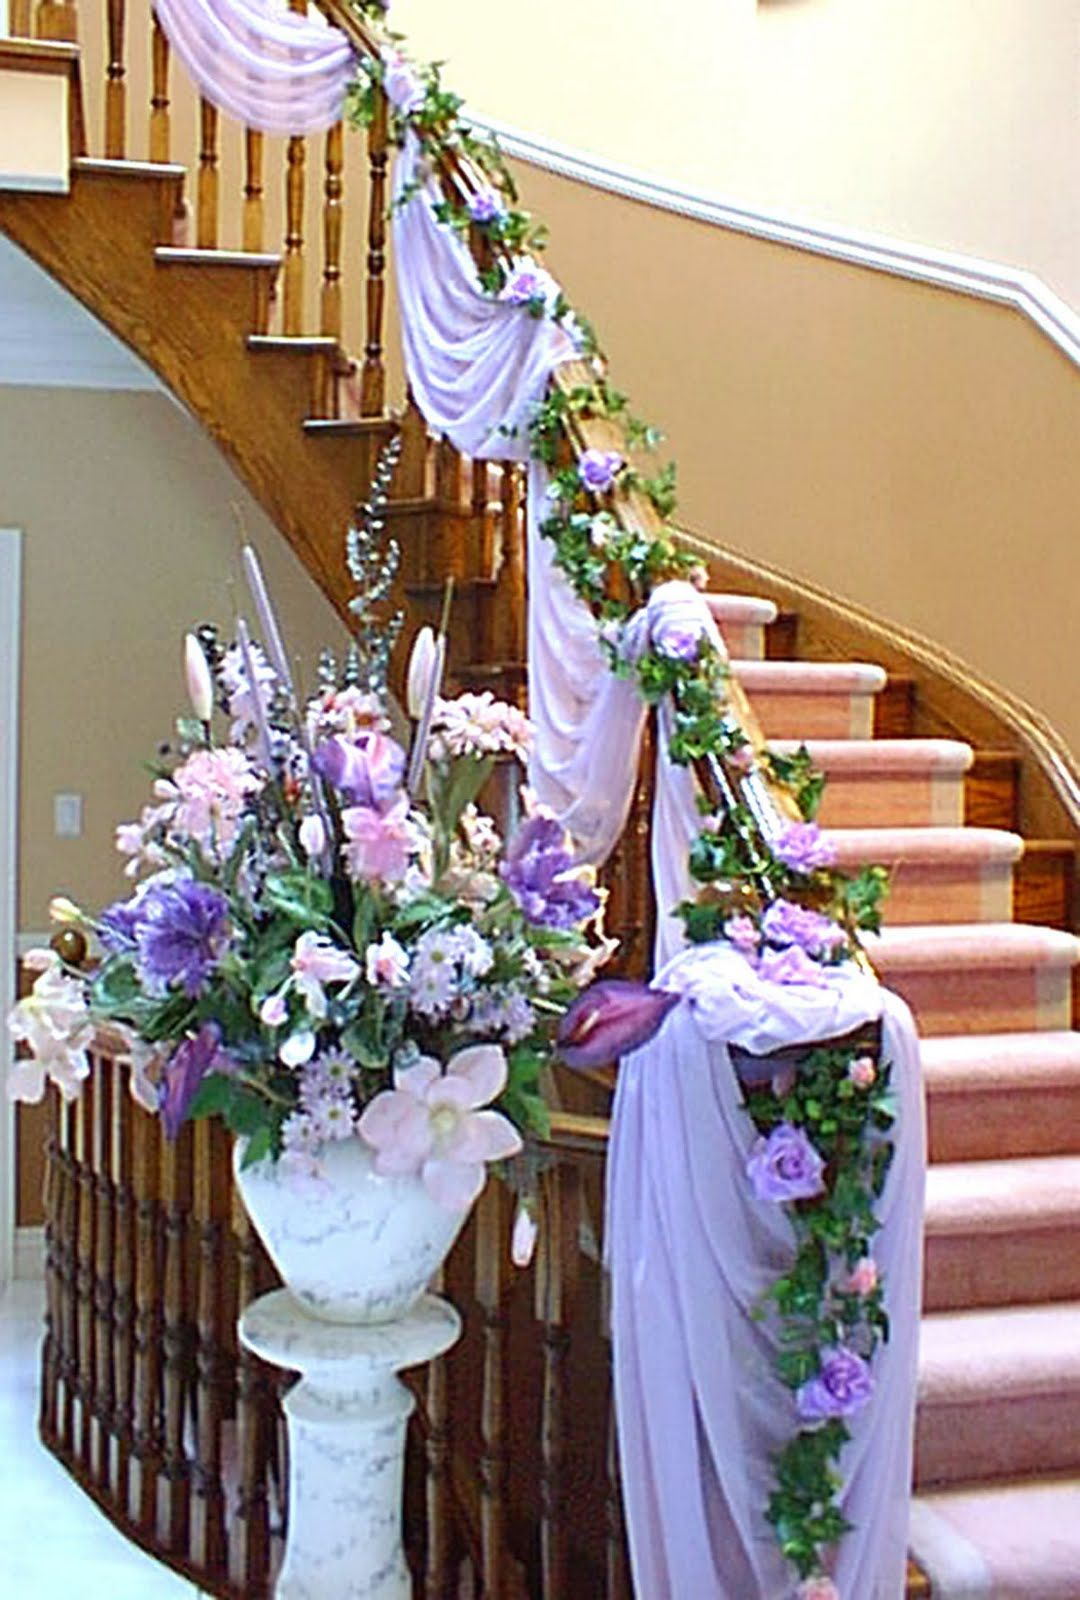 House wedding decoration ideas wedding pinterest decoration house wedding decoration ideas junglespirit Images